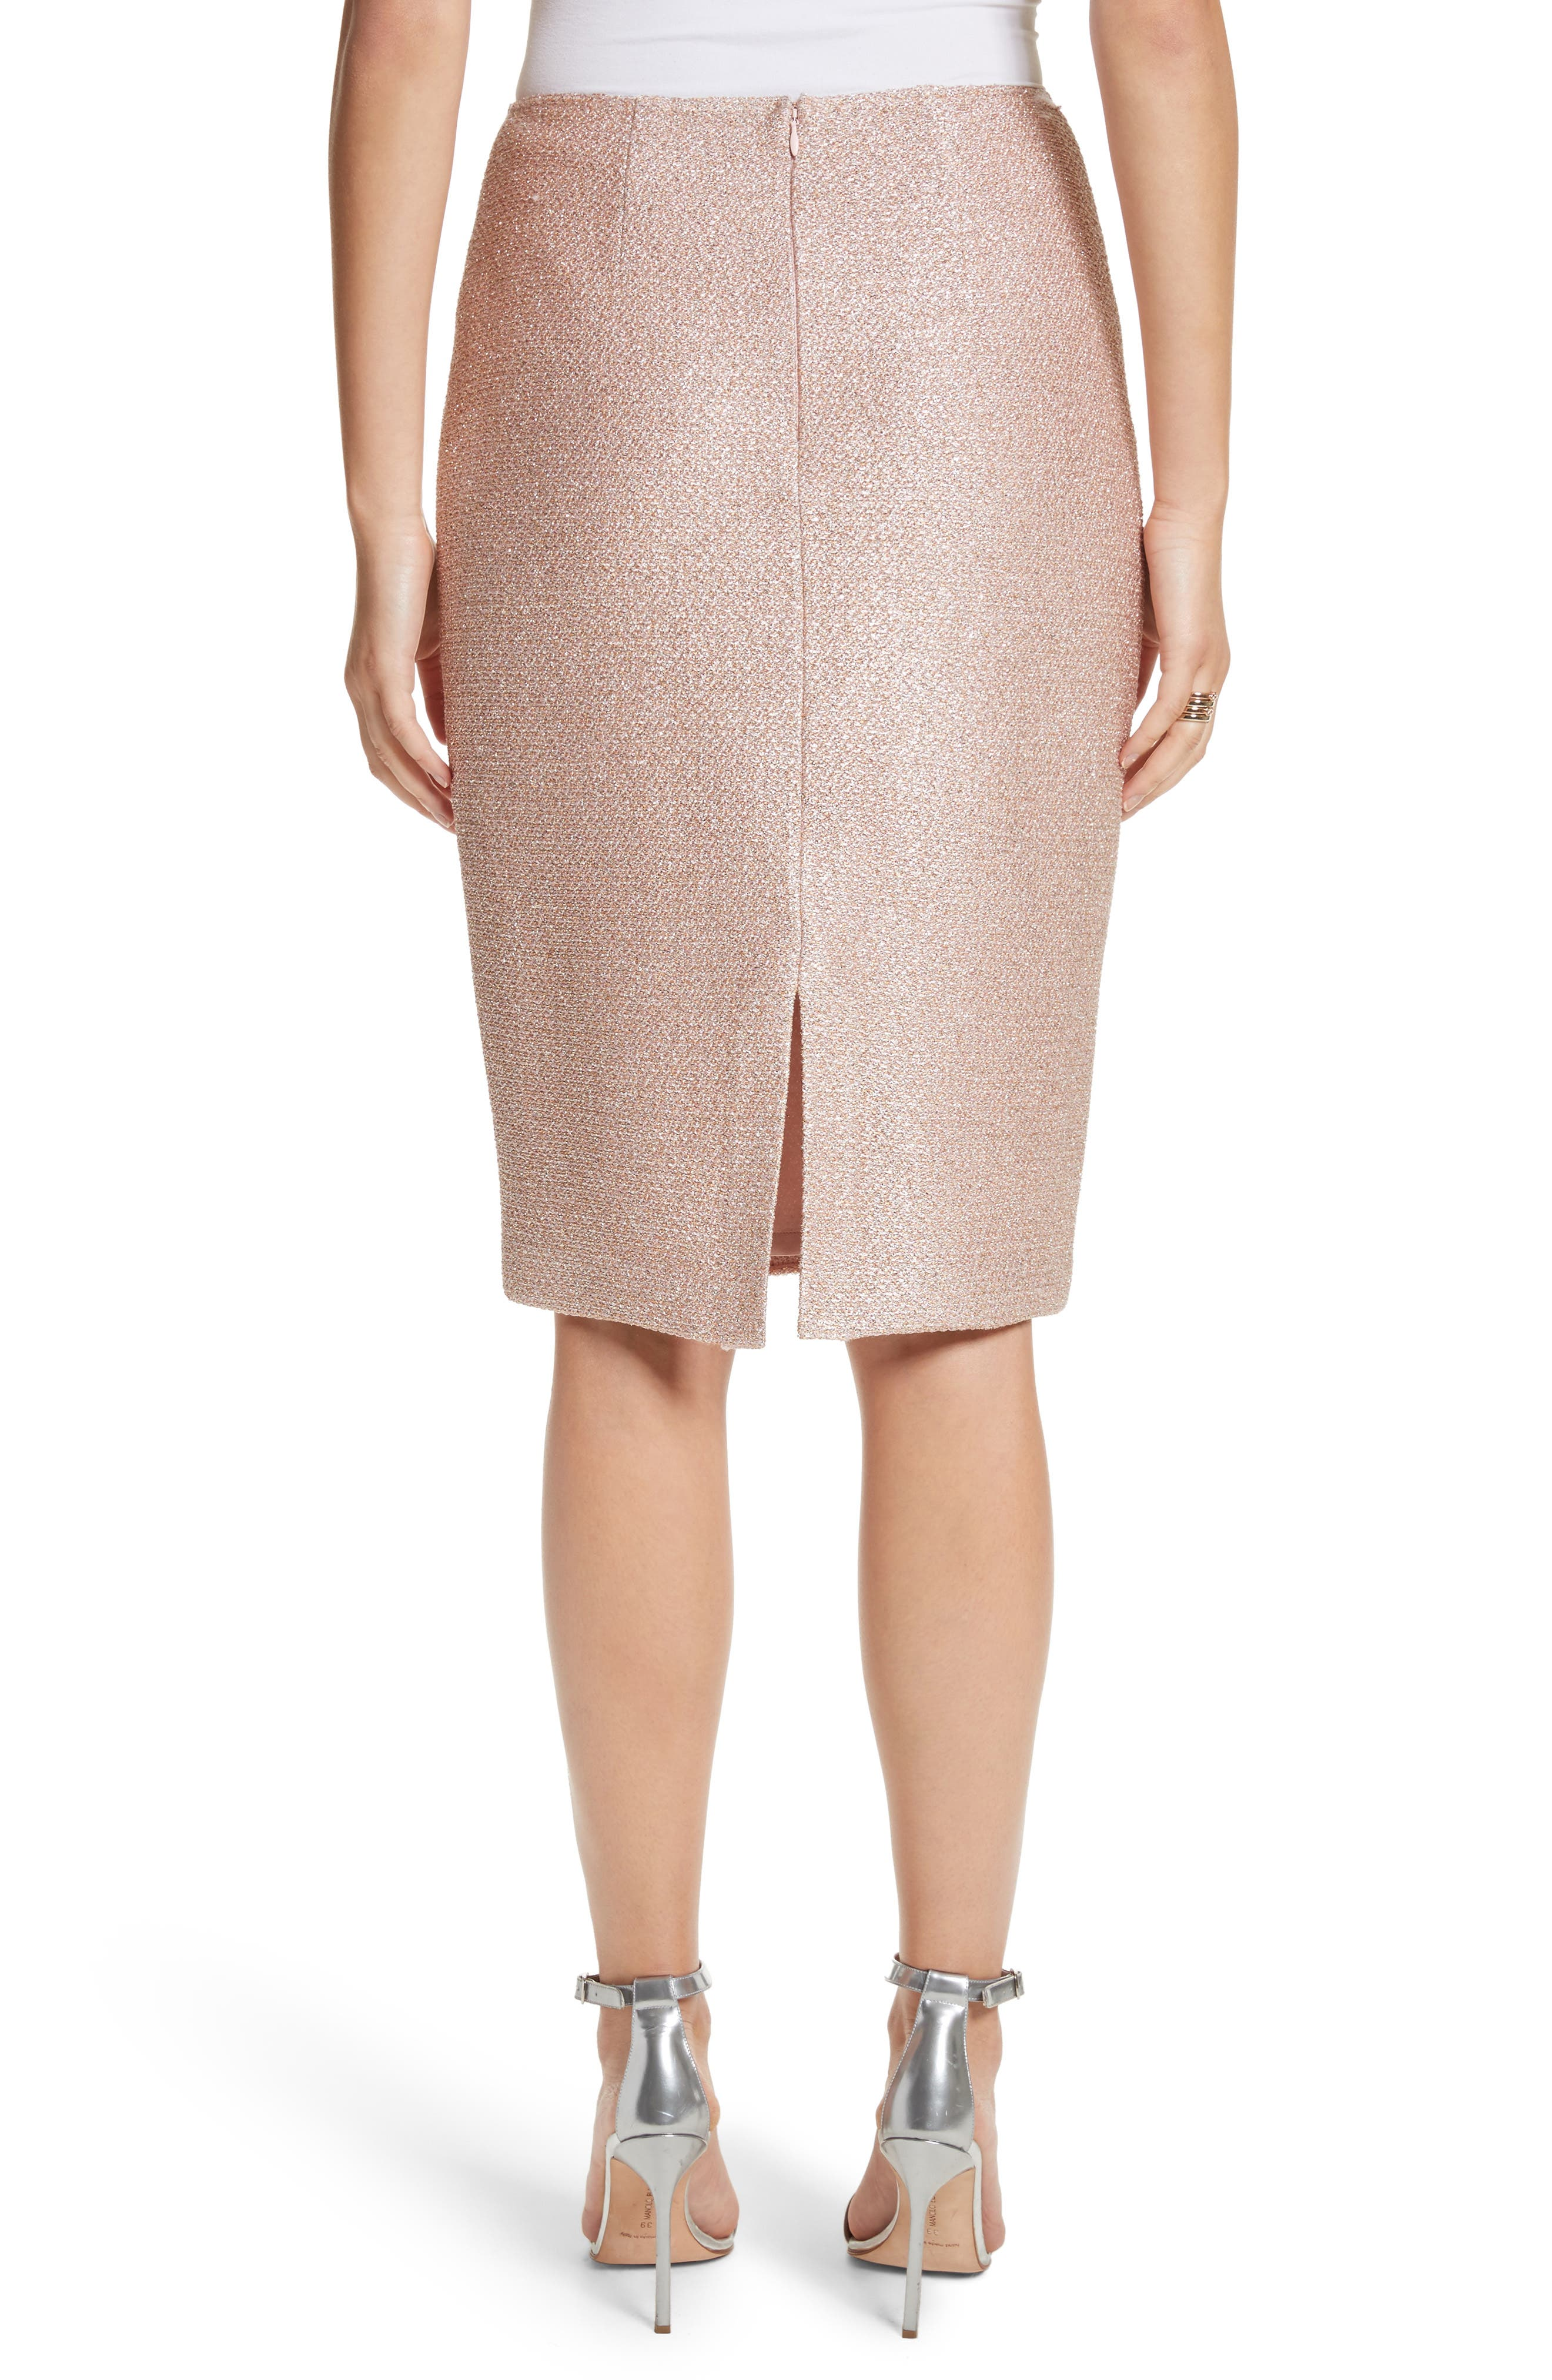 ST. JOHN COLLECTION,                             Frosted Metallic Knit Pencil Skirt,                             Alternate thumbnail 2, color,                             660